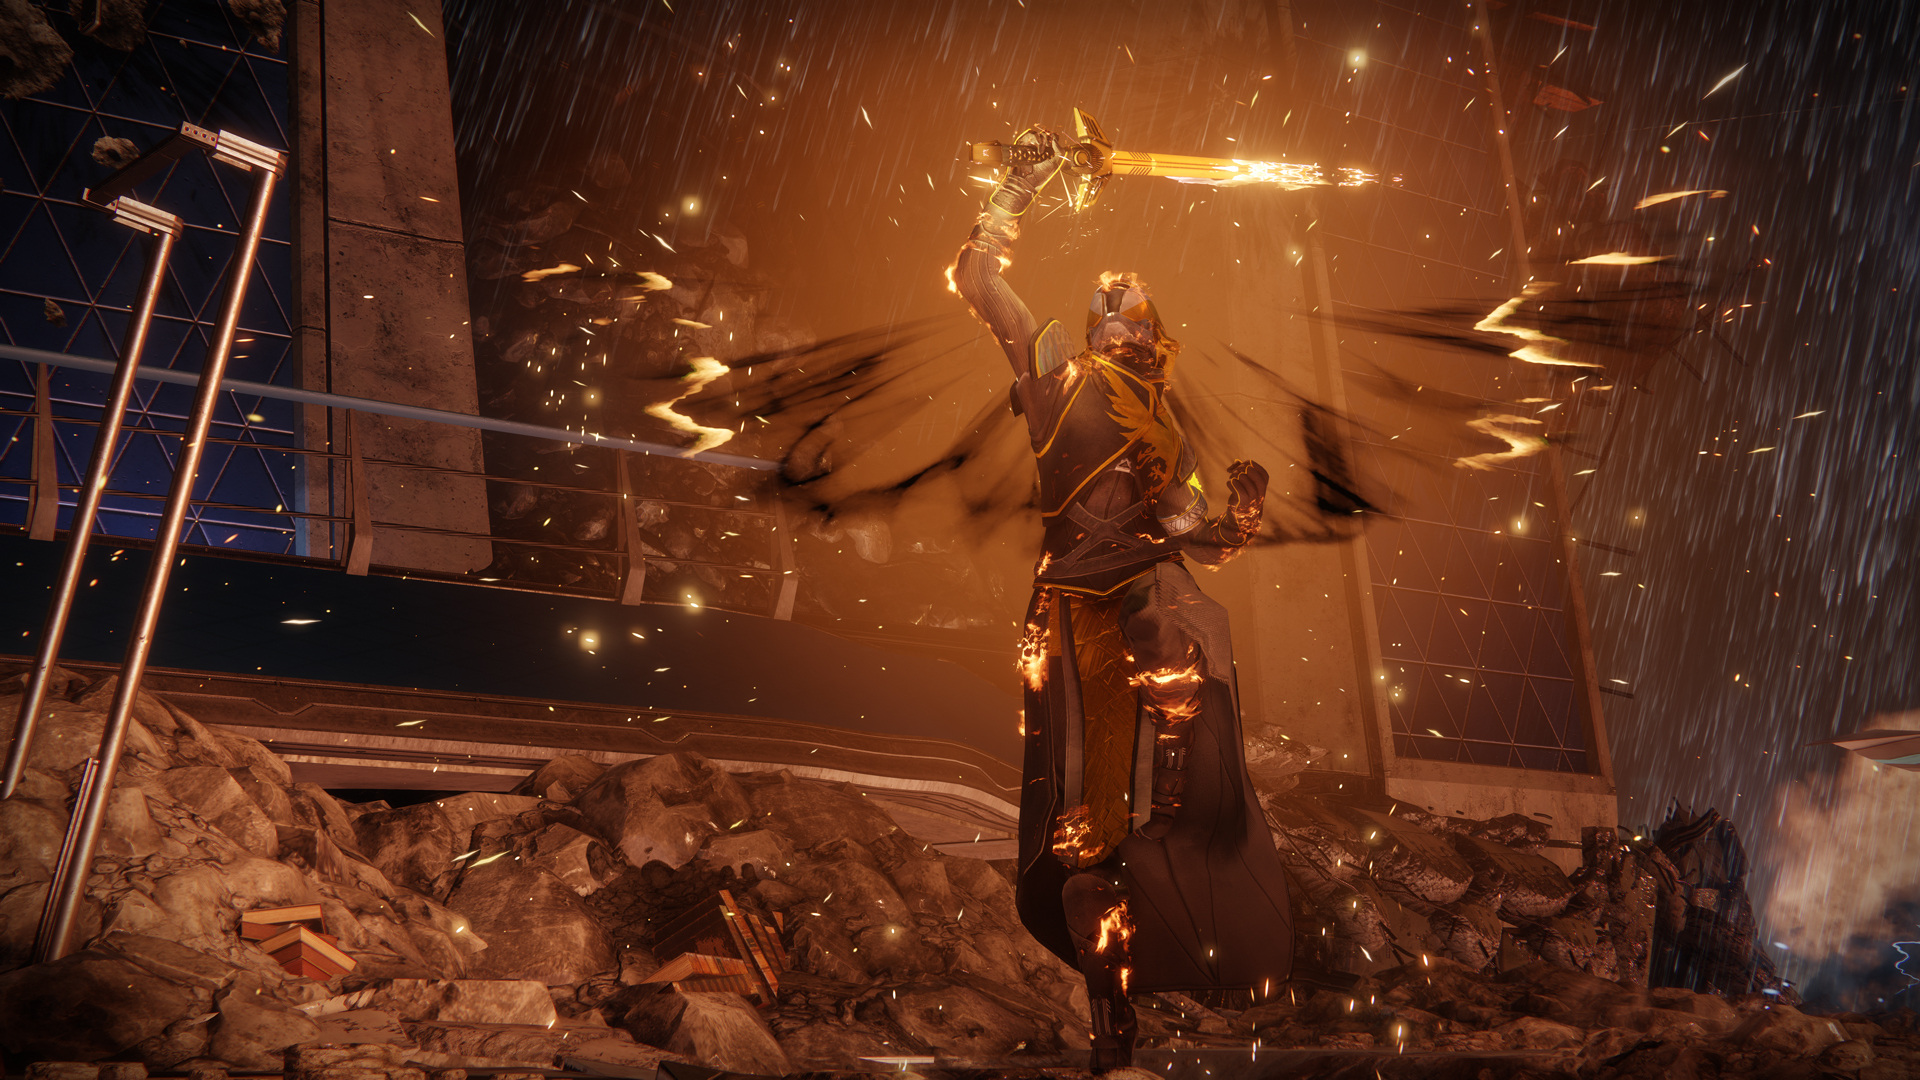 destiny 2 what class to play first Warlock